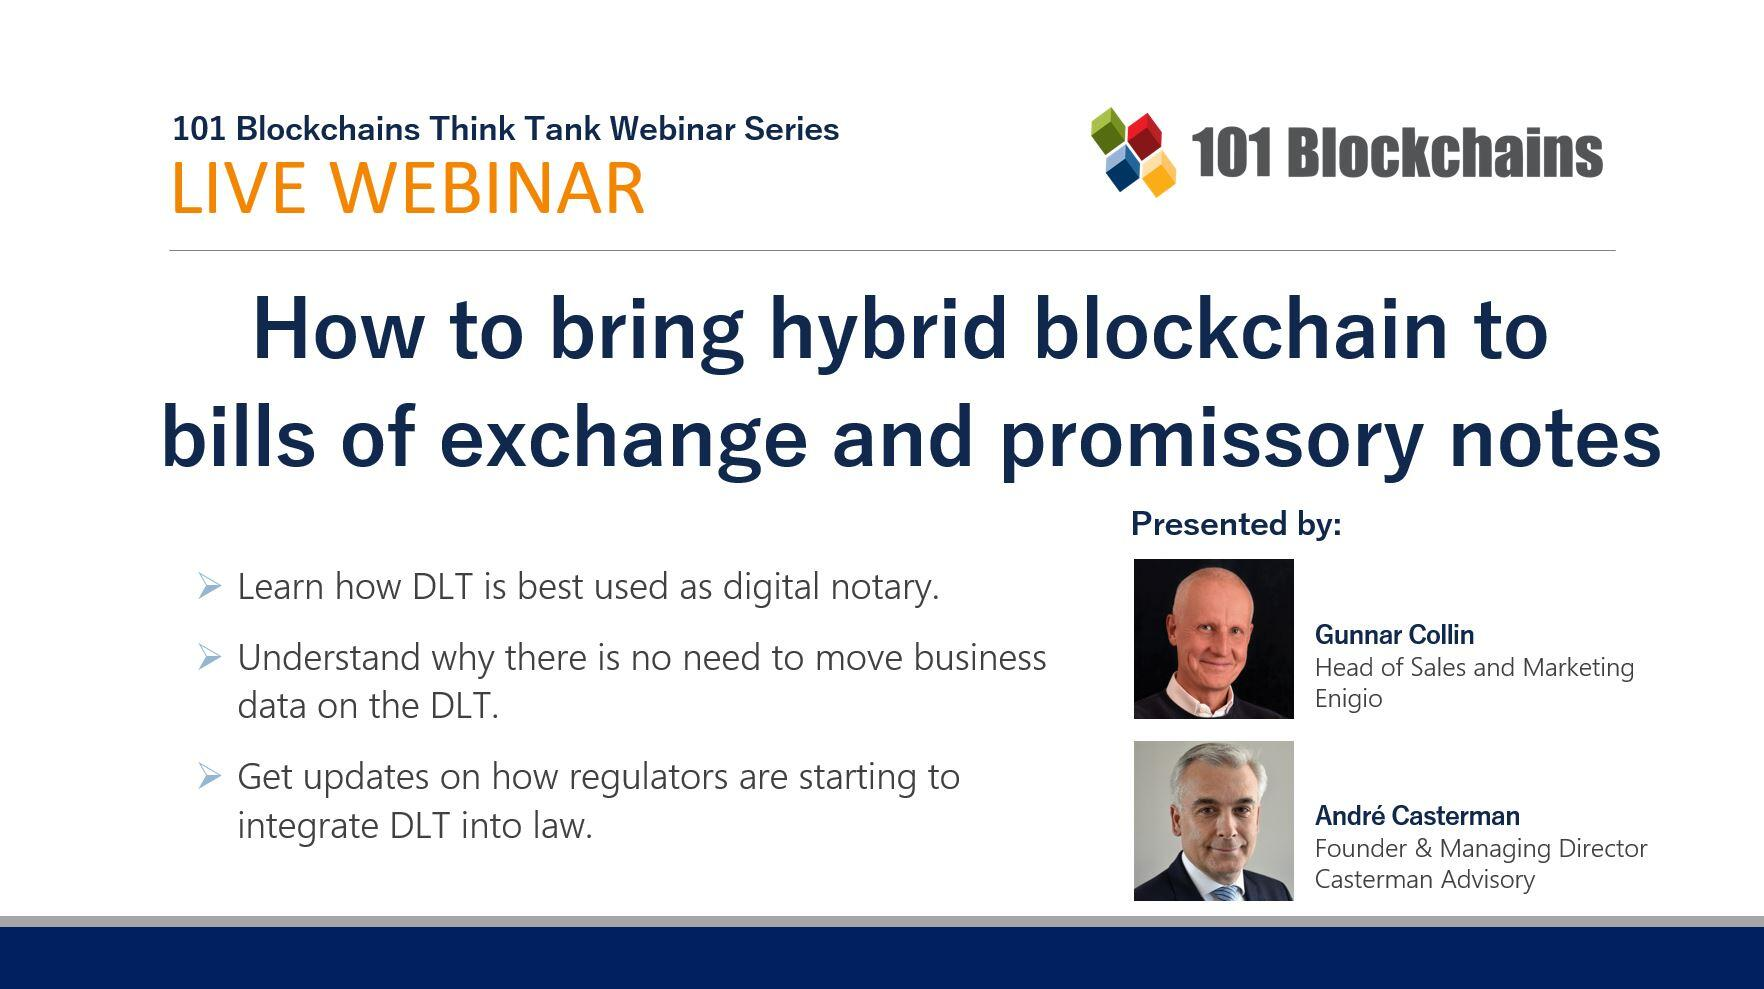 Webinar How to bring hybrid blockchain to bills of exchange and promissory notes